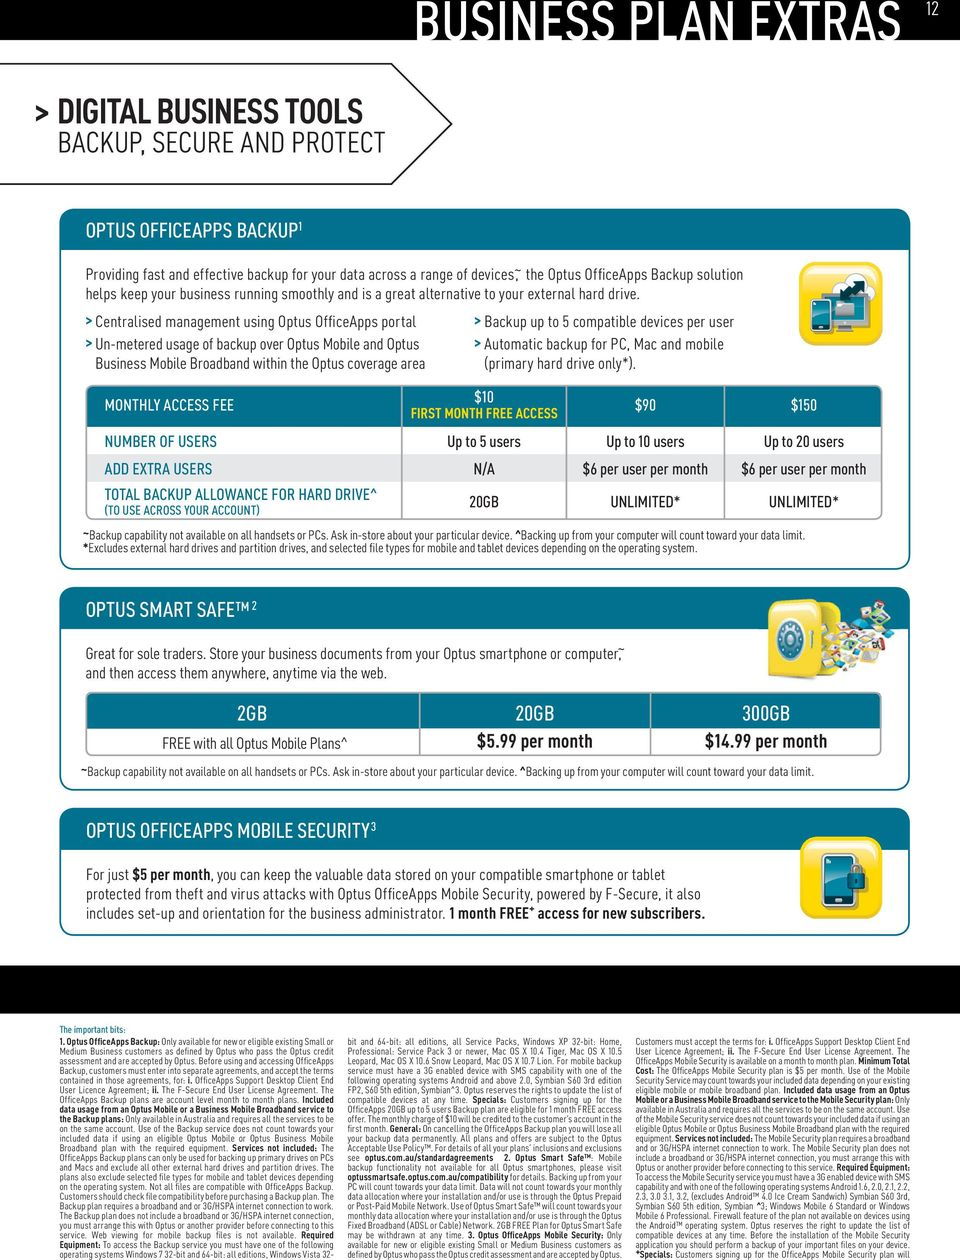 FREE BROADBAND OPTUS REWARDS YOUR BUSINESS WITH OUR $89